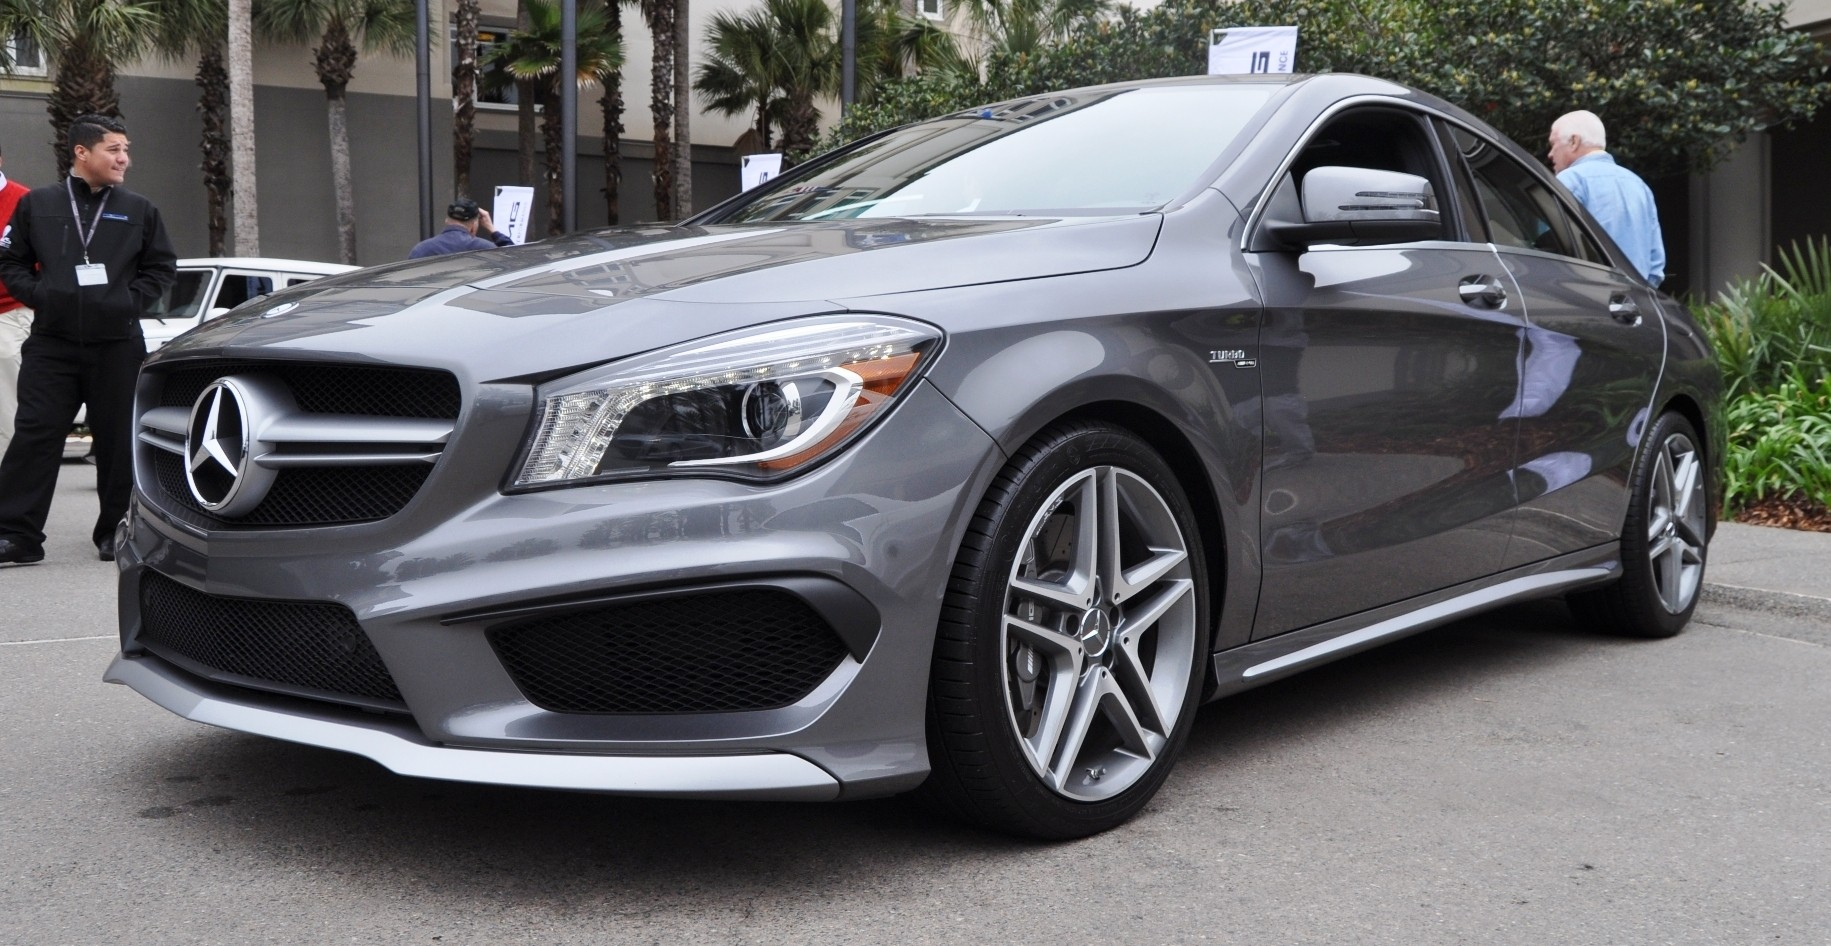 Track drive review 2015 mercedes benz cla45 amg at road for 2015 mercedes benz cla class cla 45 amg